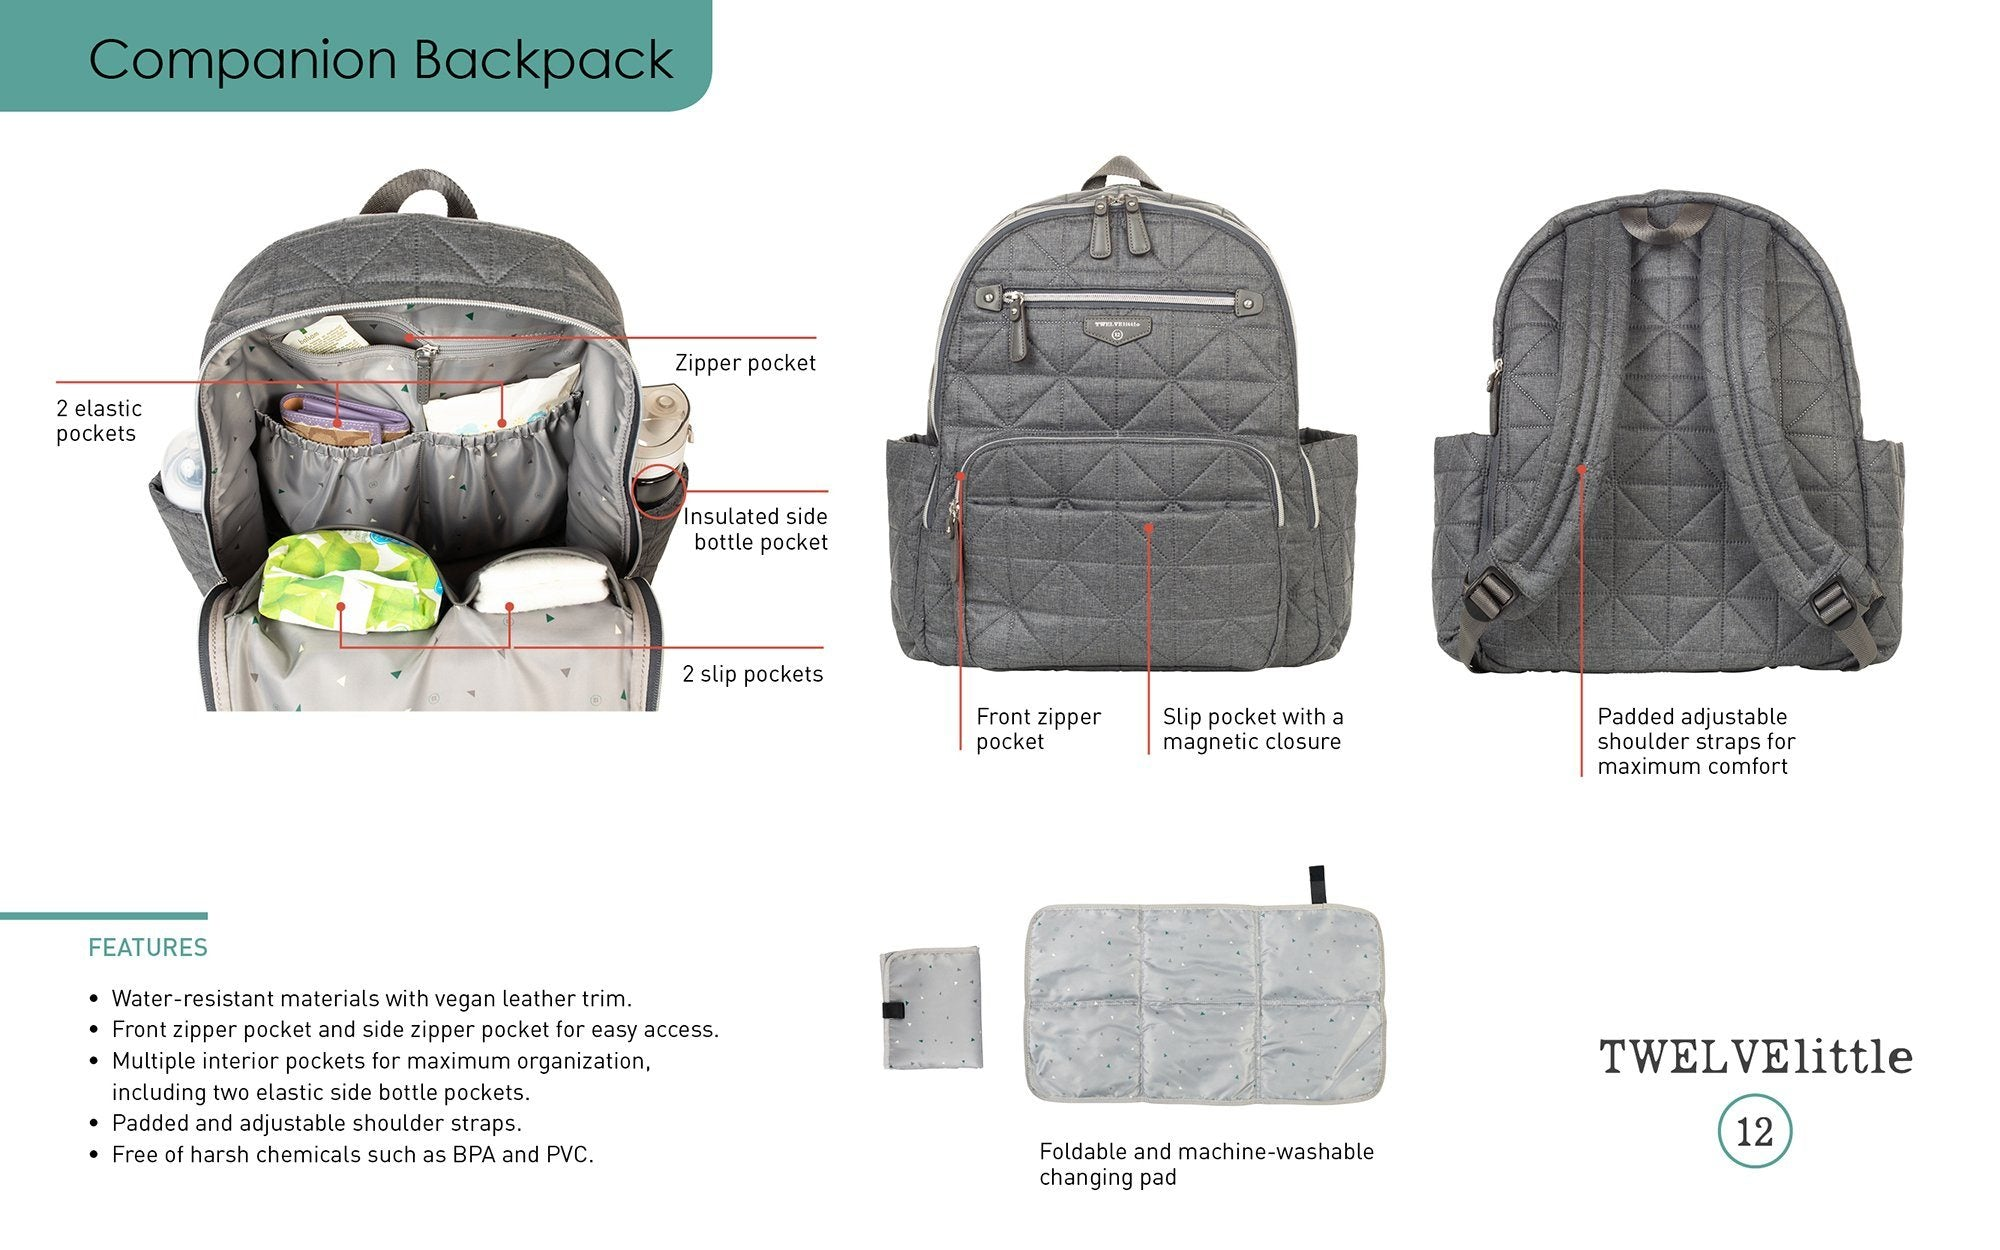 Companion Backpack - Project Nursery